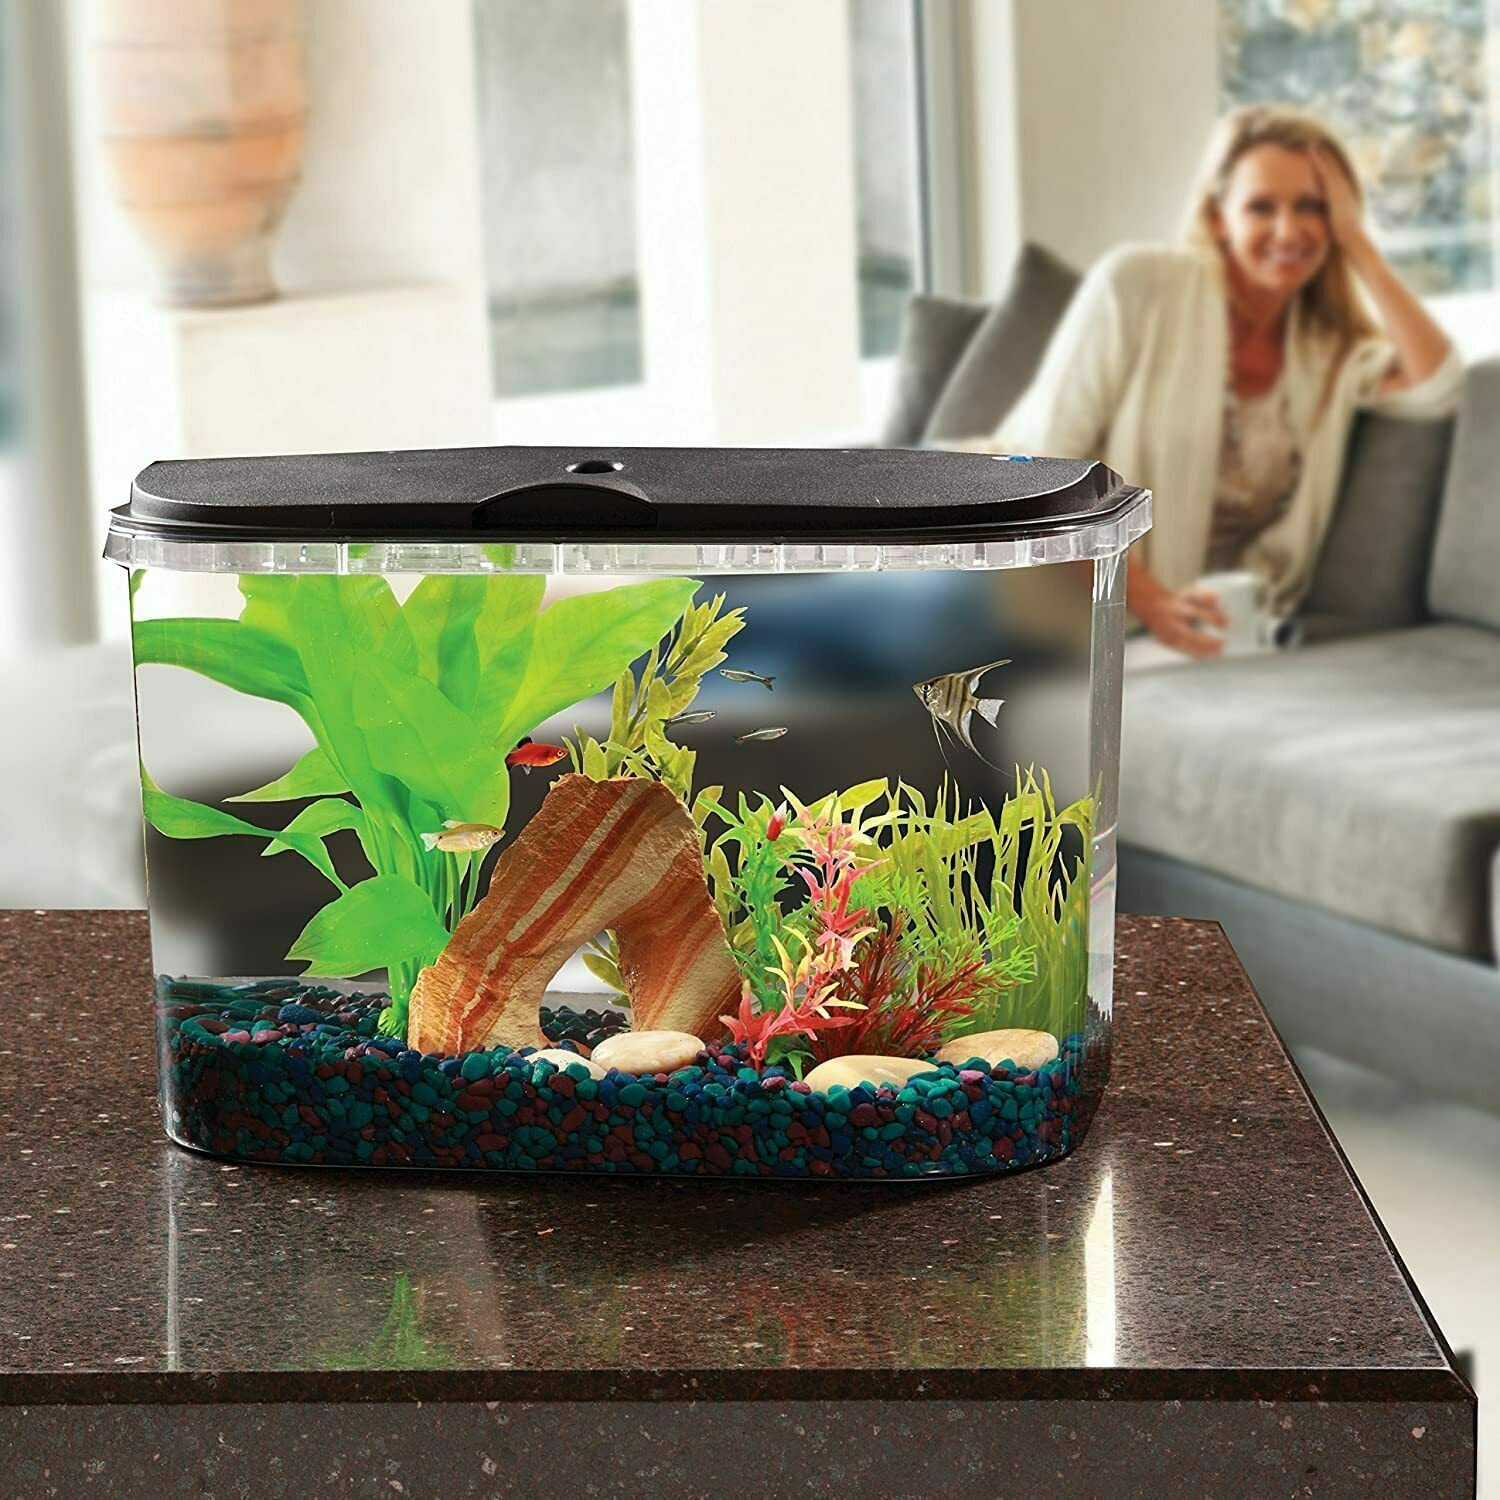 Koller Products Aquaview 5